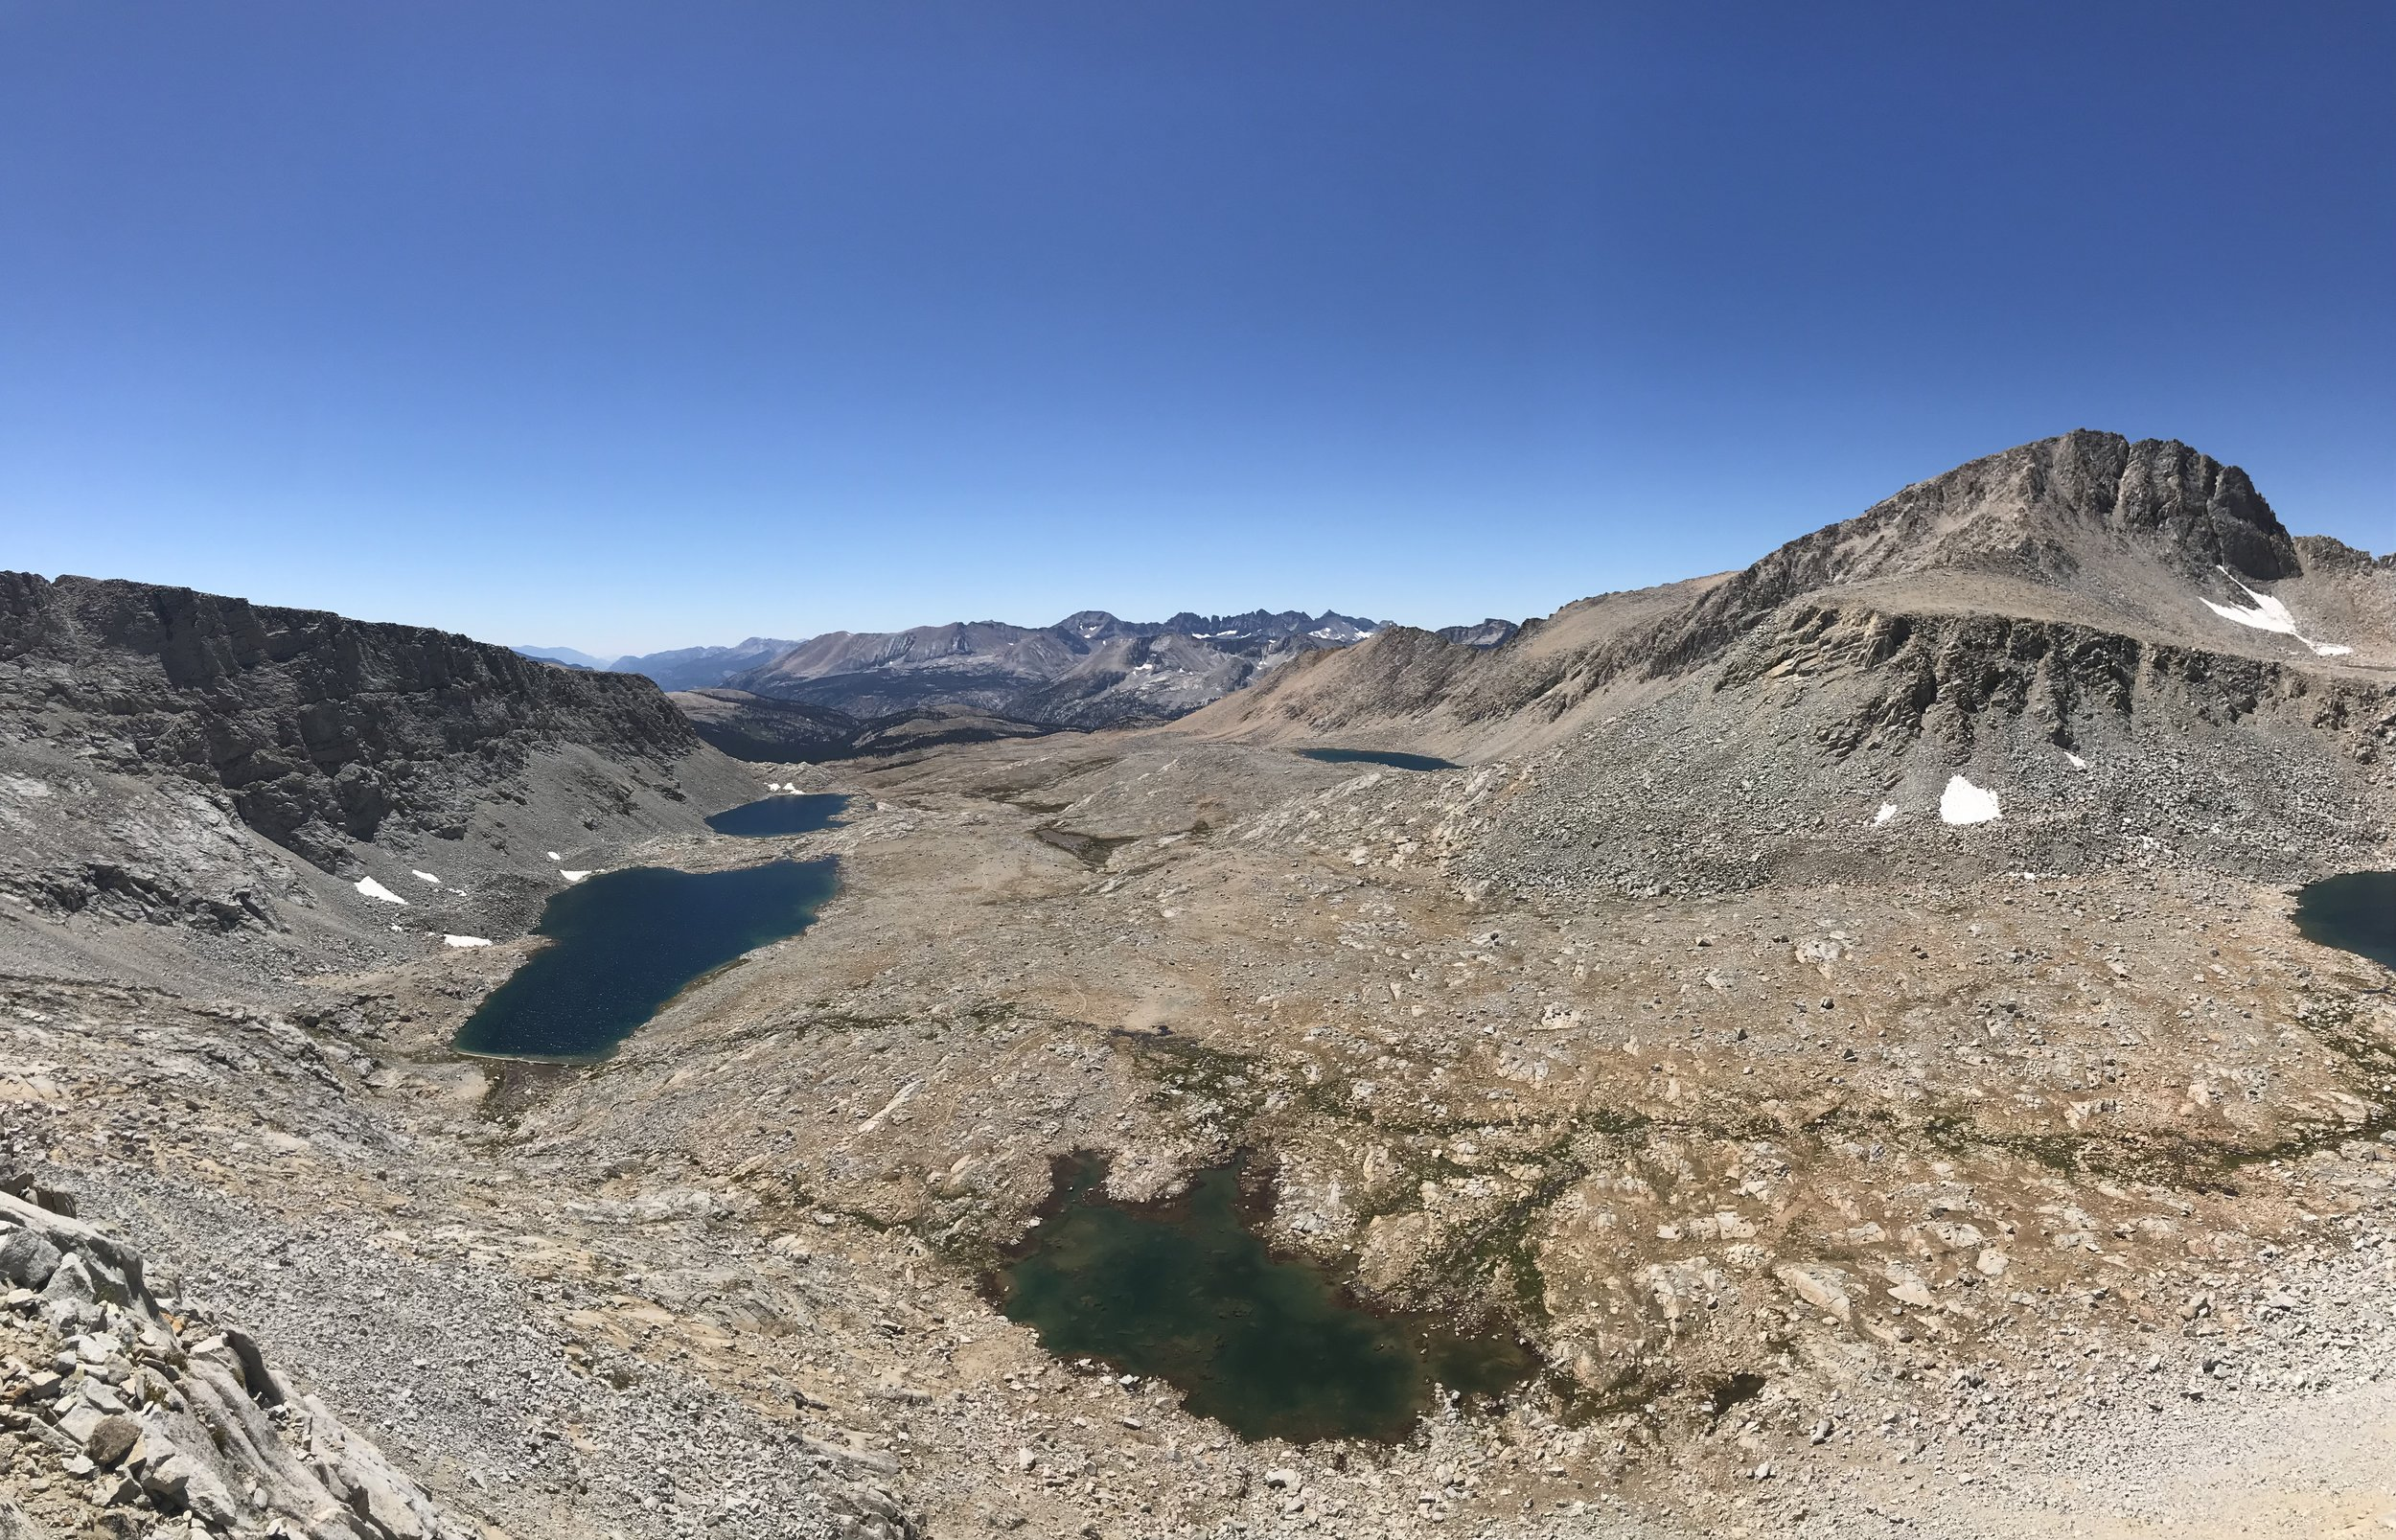 Looking south from the pass.